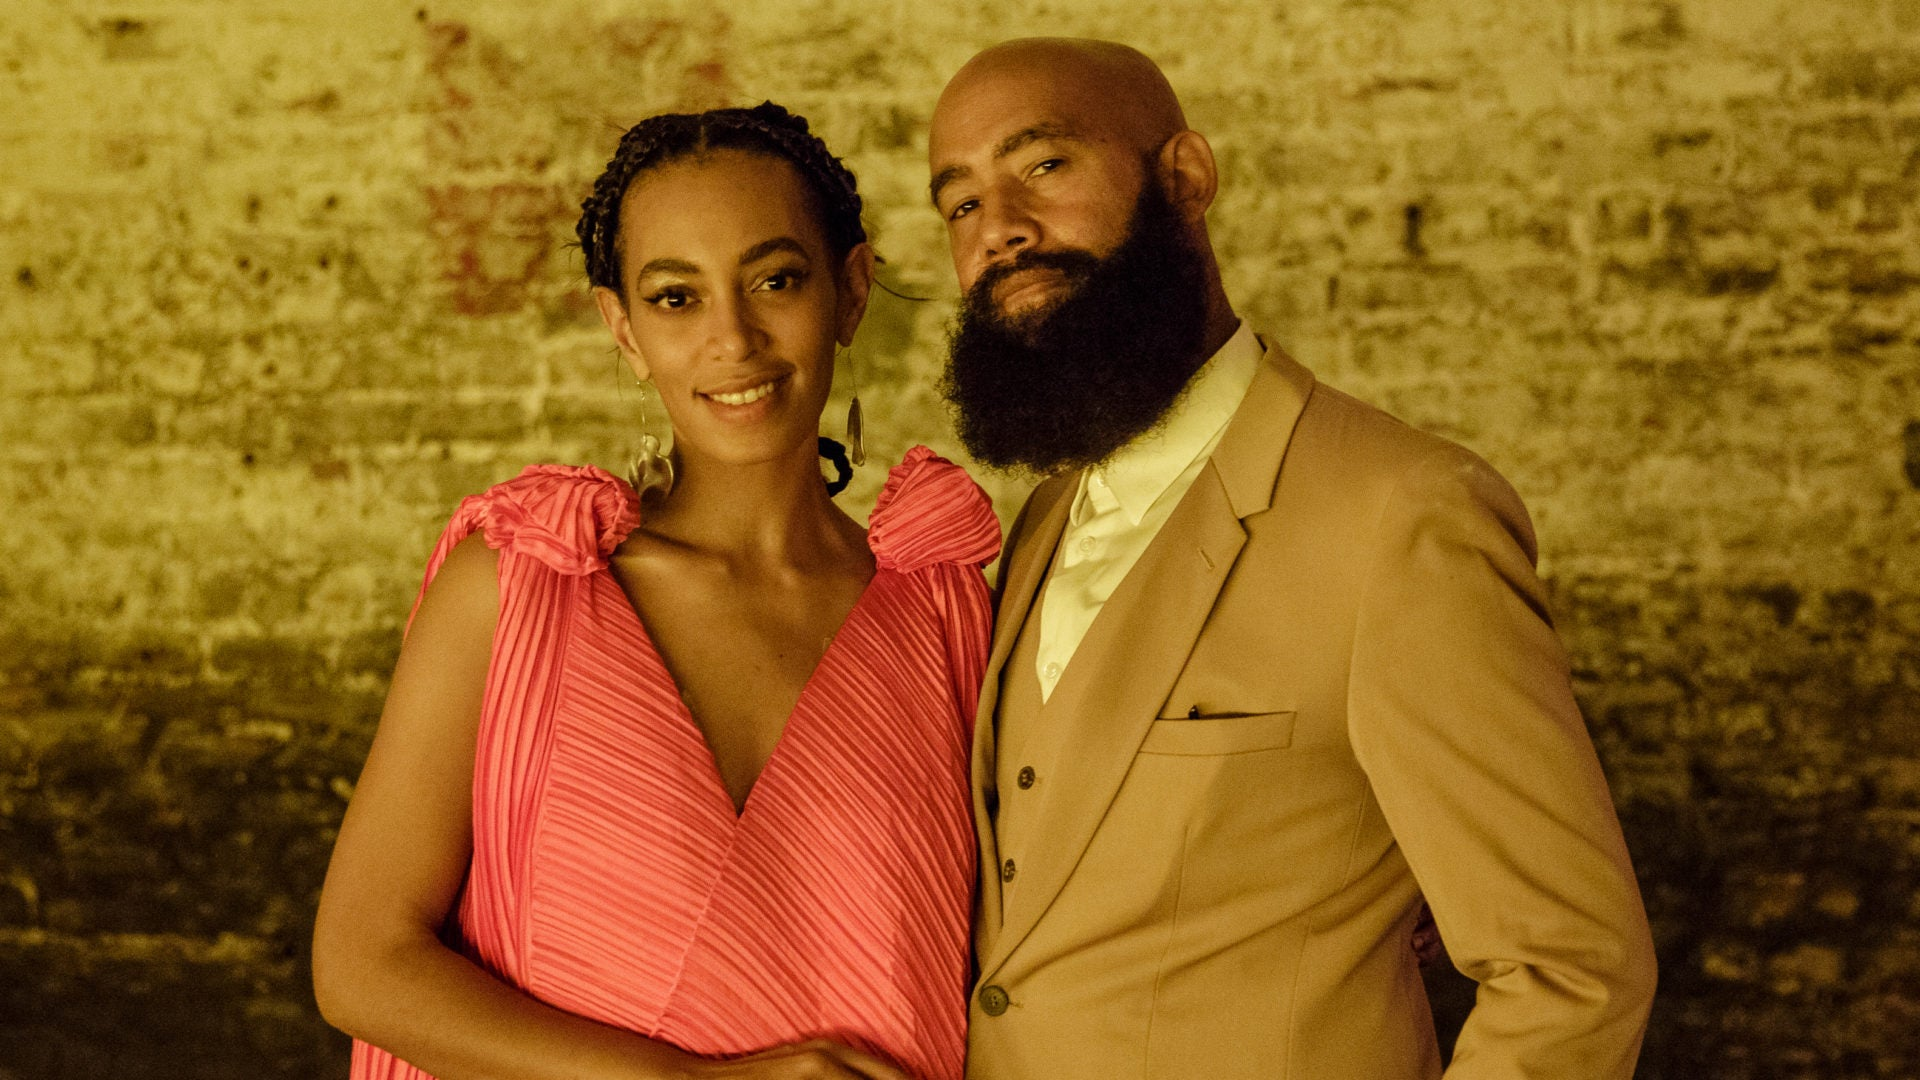 Solange Knowles splits with husband ahead of anniversary